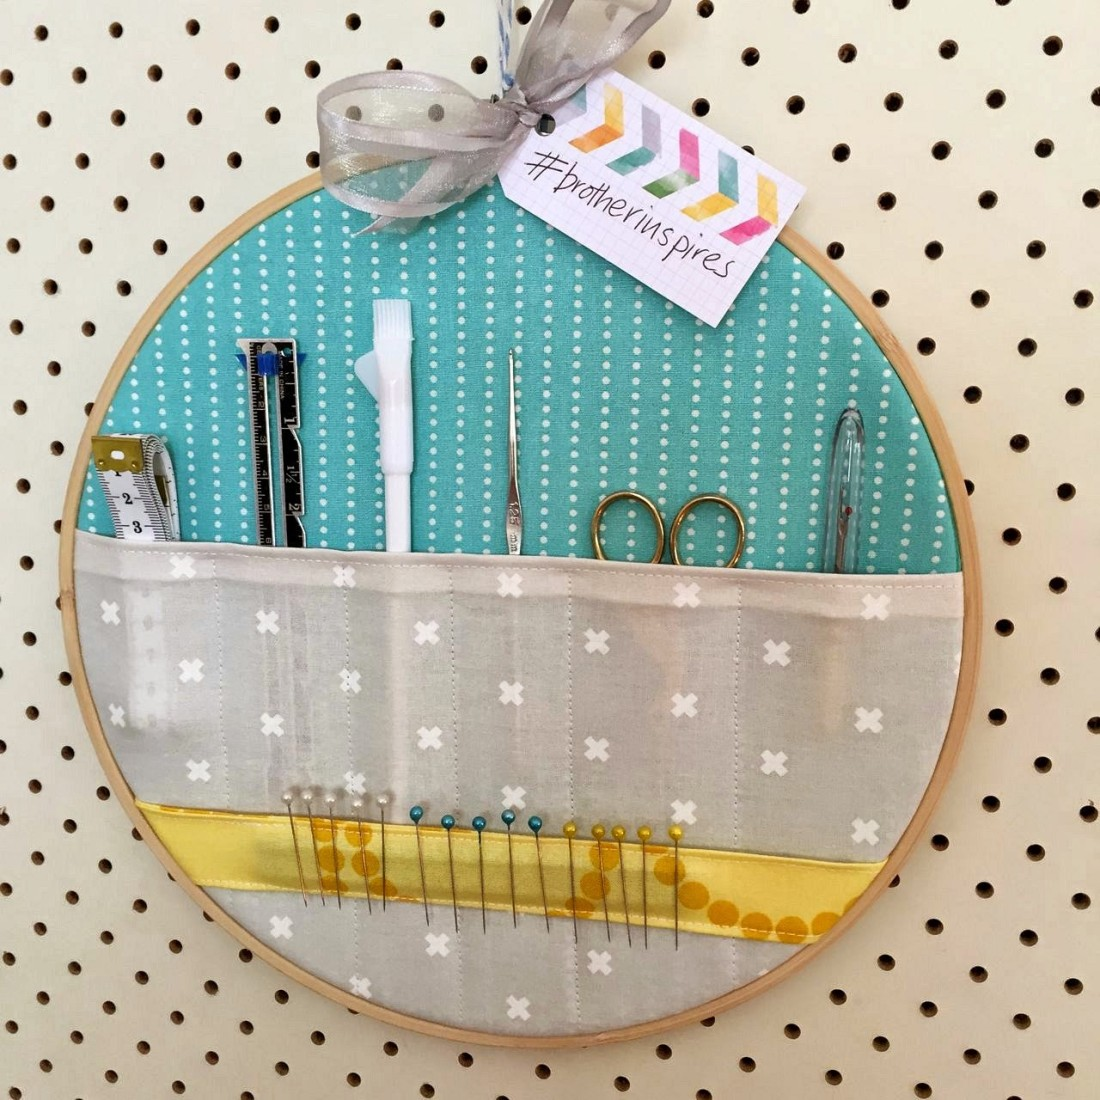 small sewing projects 101 sewing tutorials for summer easy mesh beach bag – small fry & co i hope this helps you find the perfect little summer sewing projects have fun.